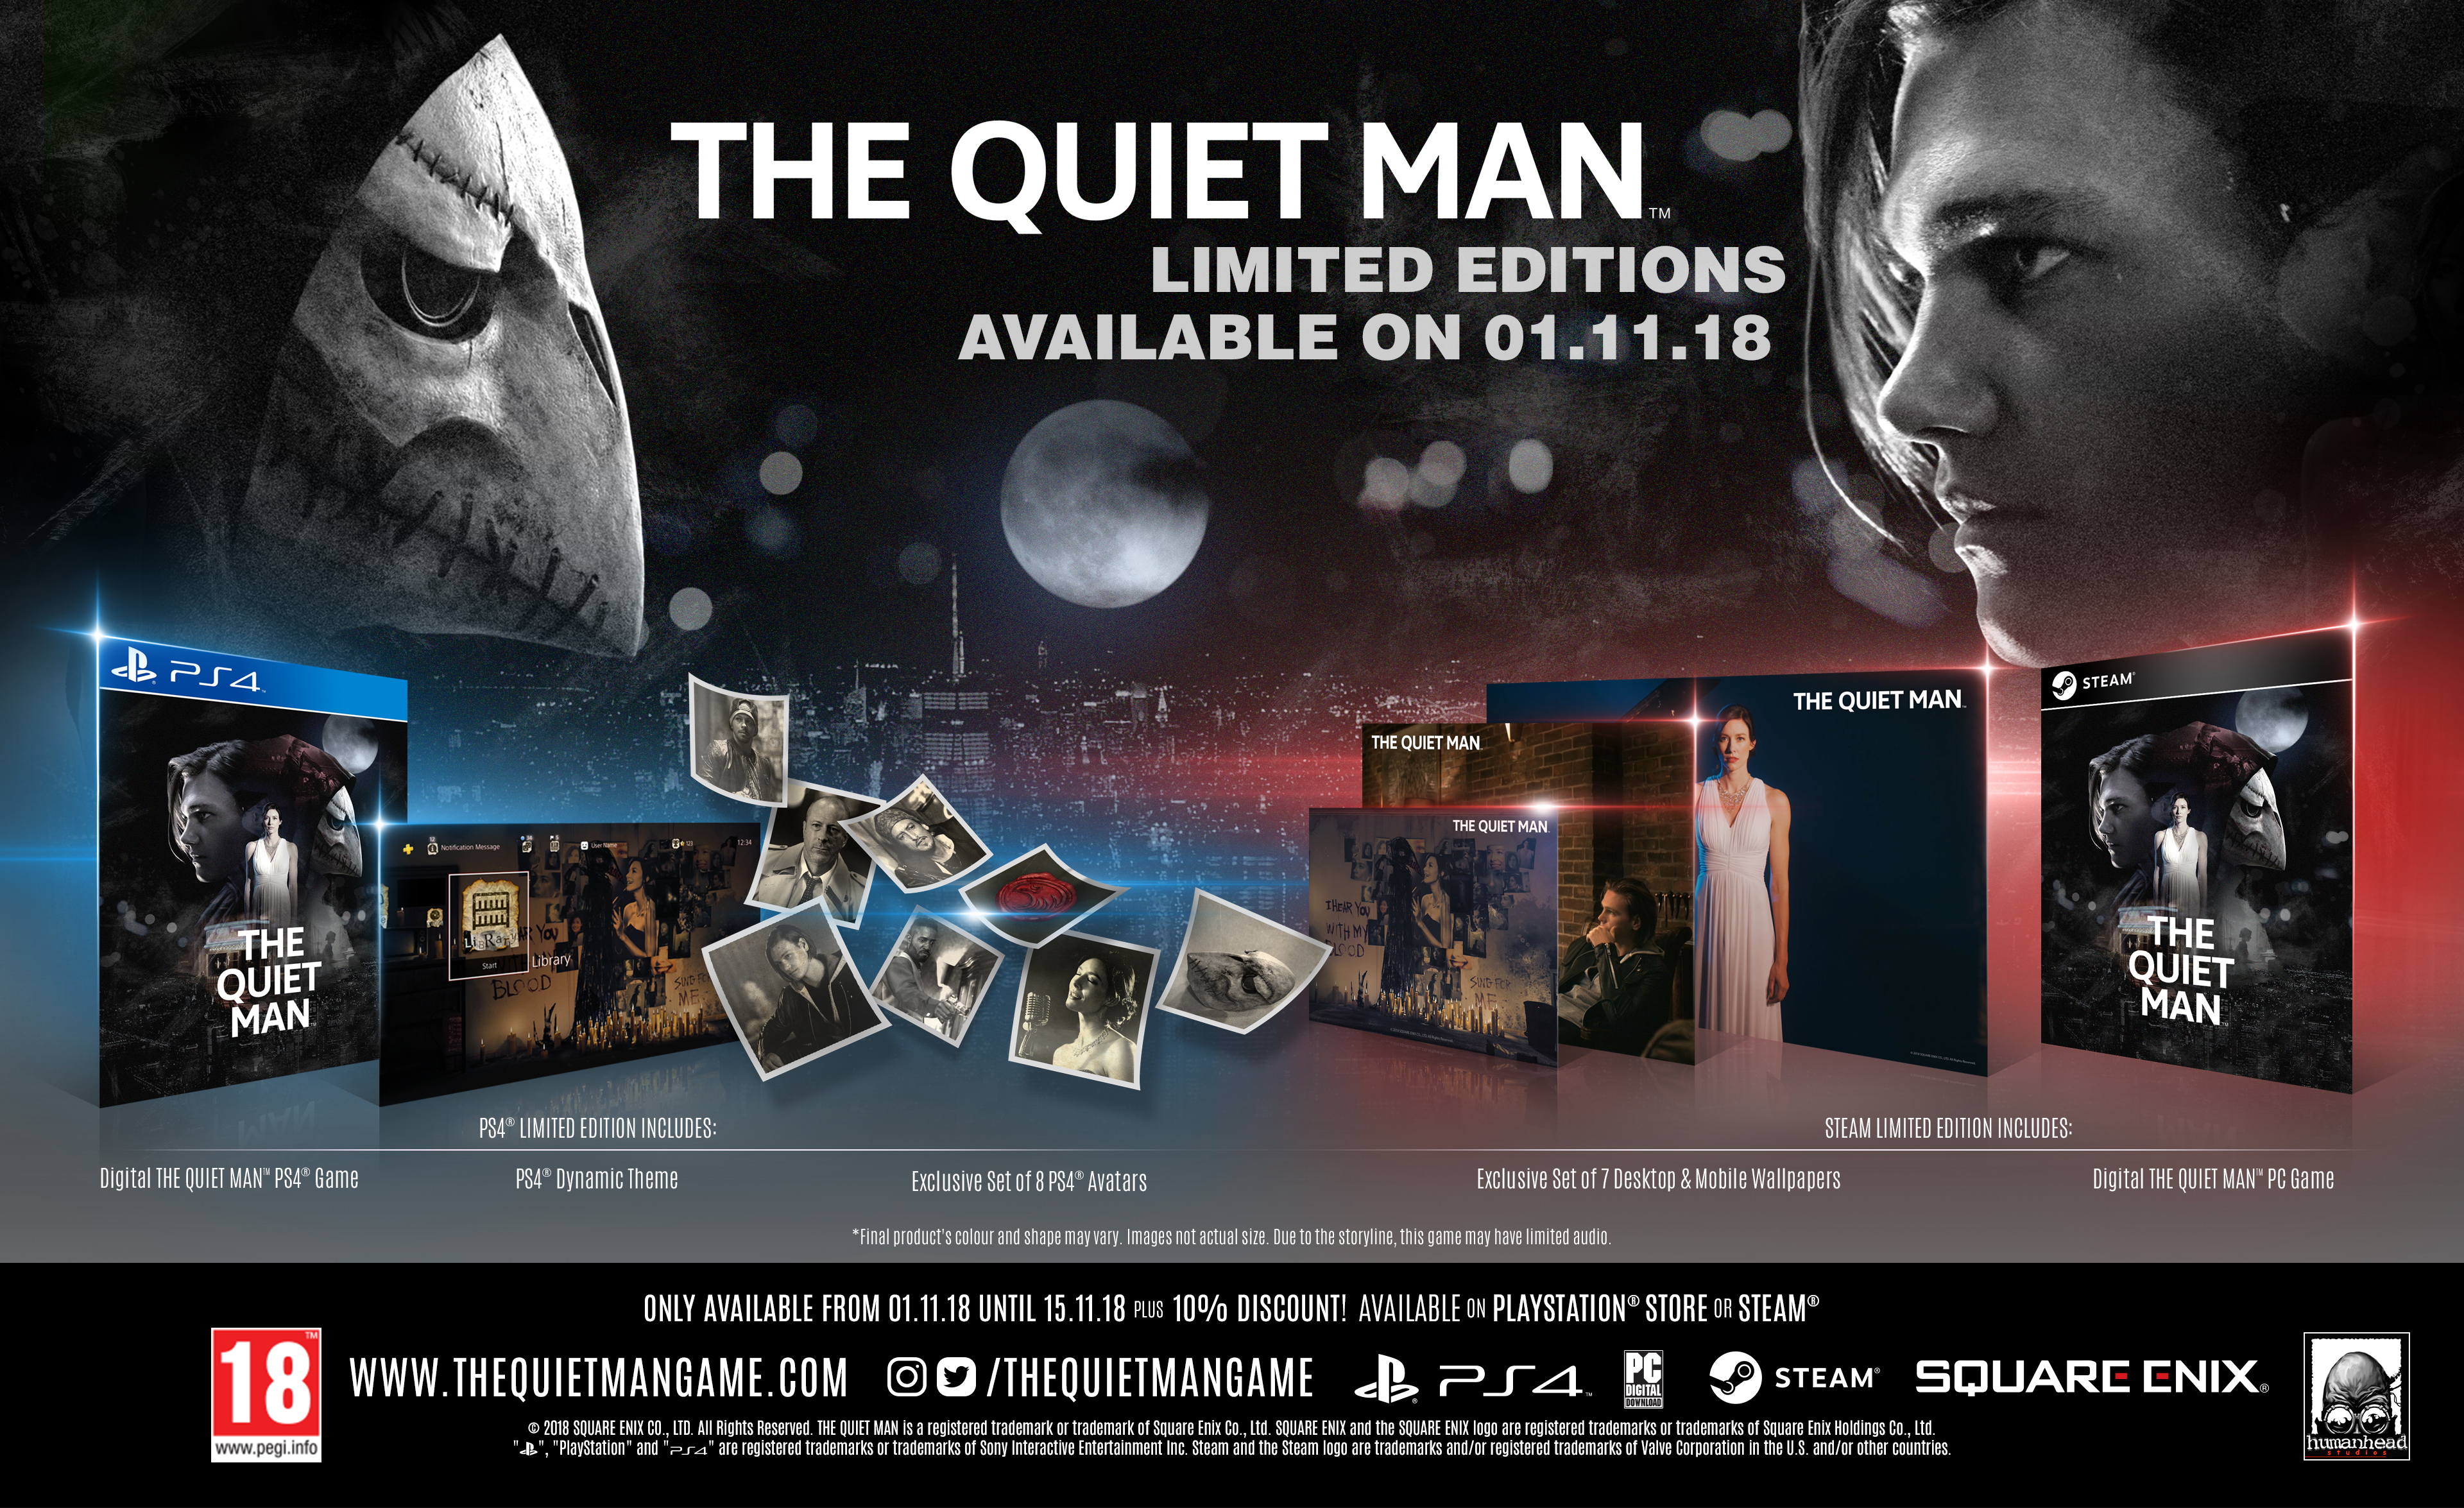 The Quiet Man Release date Limited Edition Image